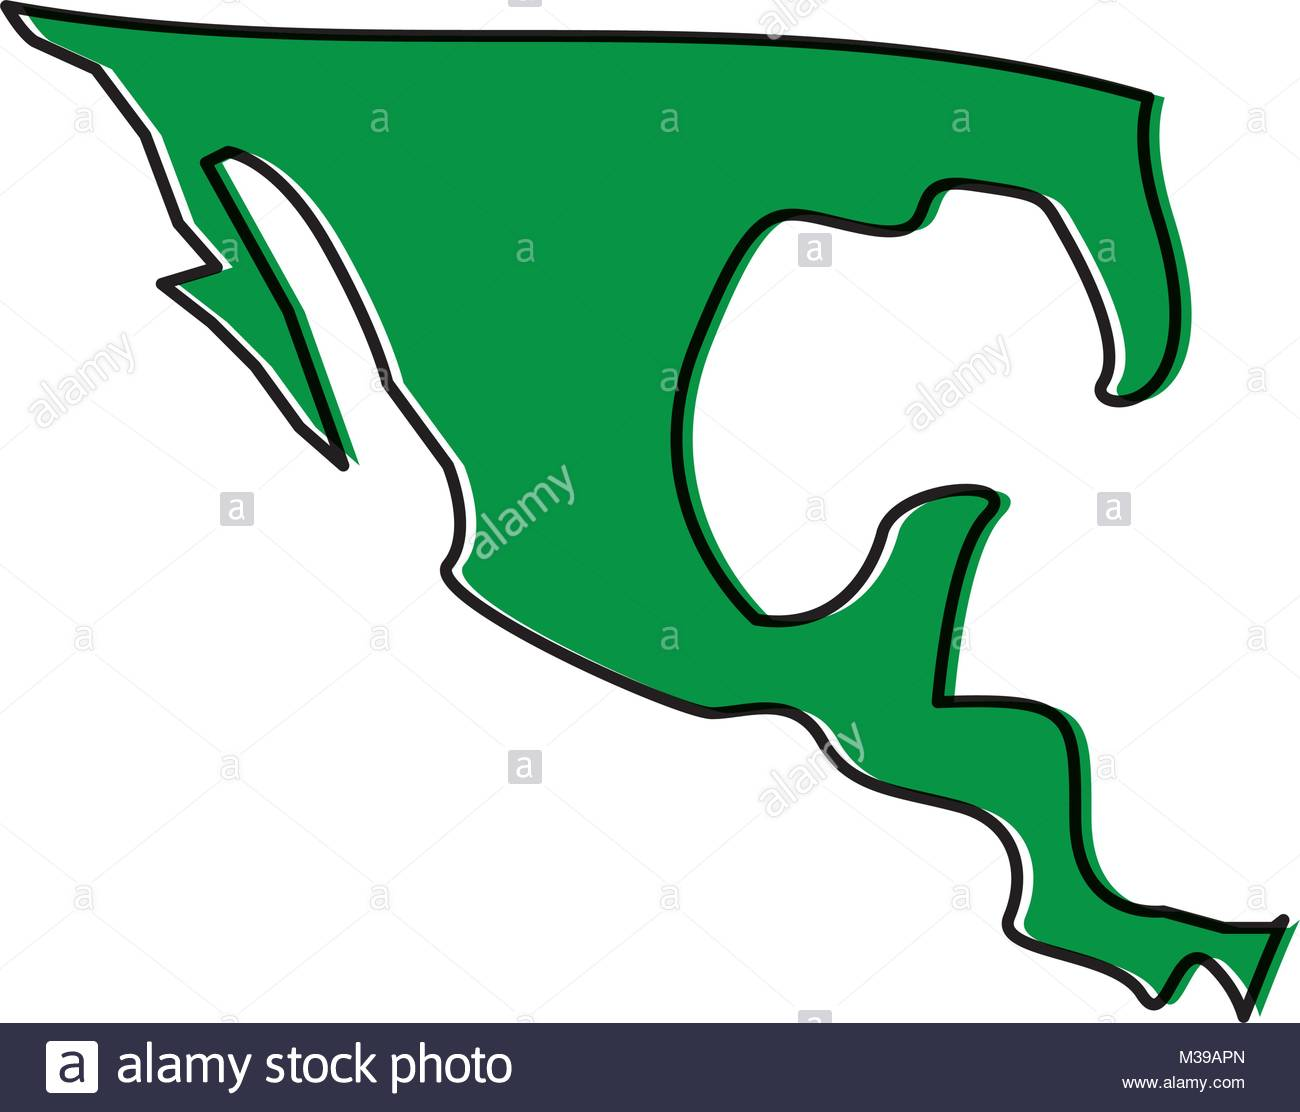 1300x1112 Silhouette Map Of Mexico Country Stock Vector Art Amp Illustration